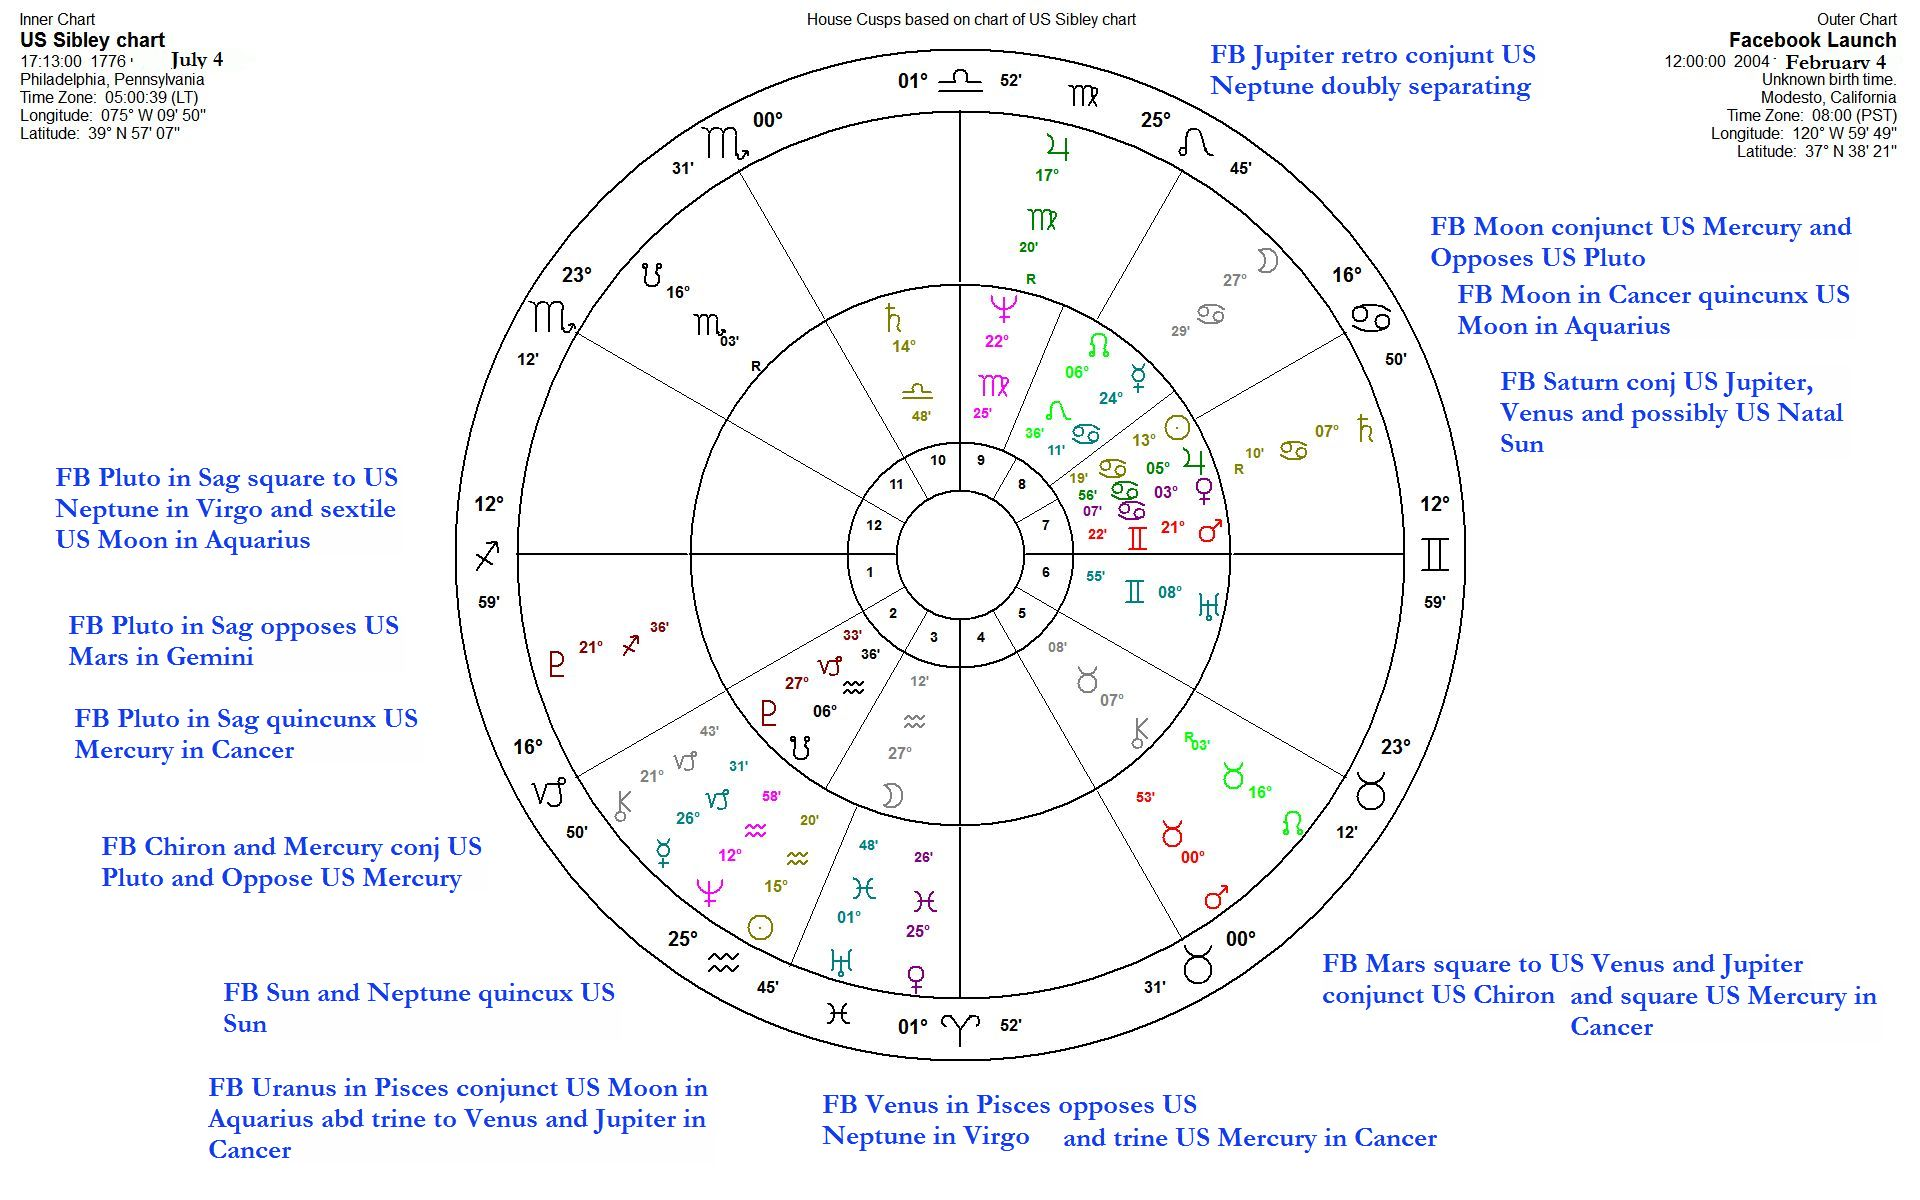 Facebook natal chart and us natal chart compared gimelstar facebook launch chart compared to us chart geenschuldenfo Images